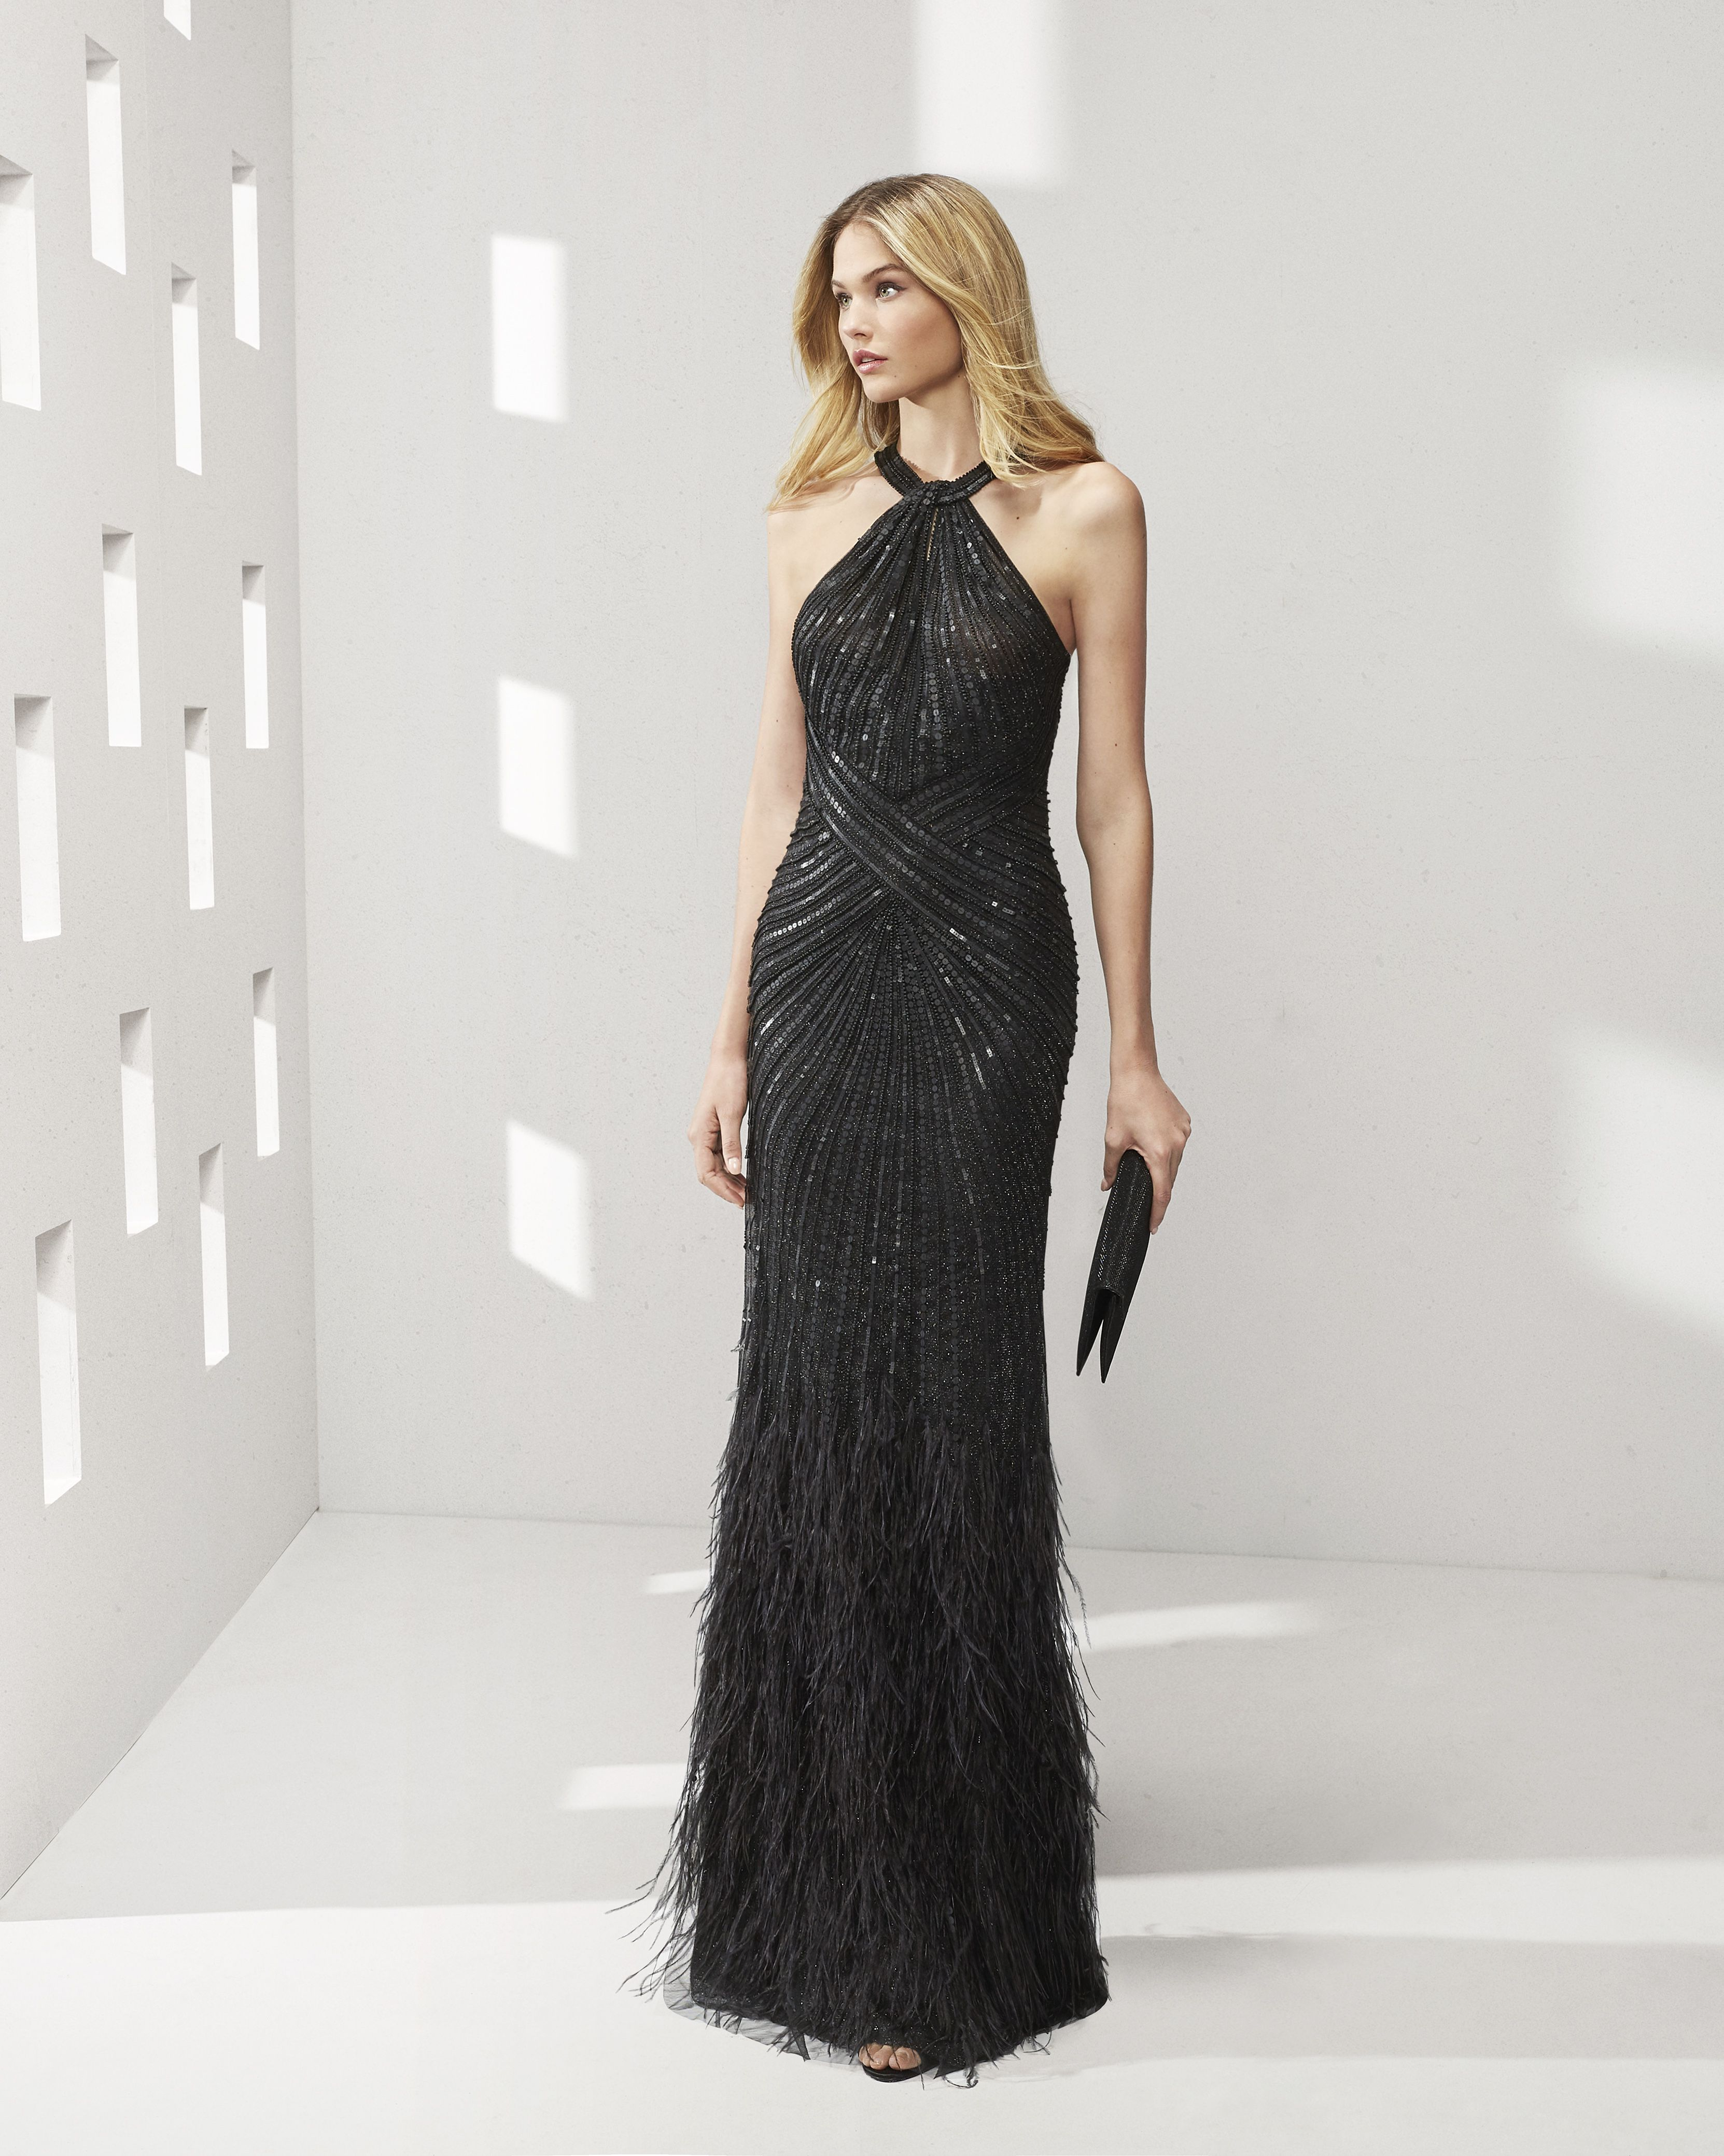 65770bda31 Long beaded cocktail dress with feathers at the hem. Halter neckline and  crossover back with